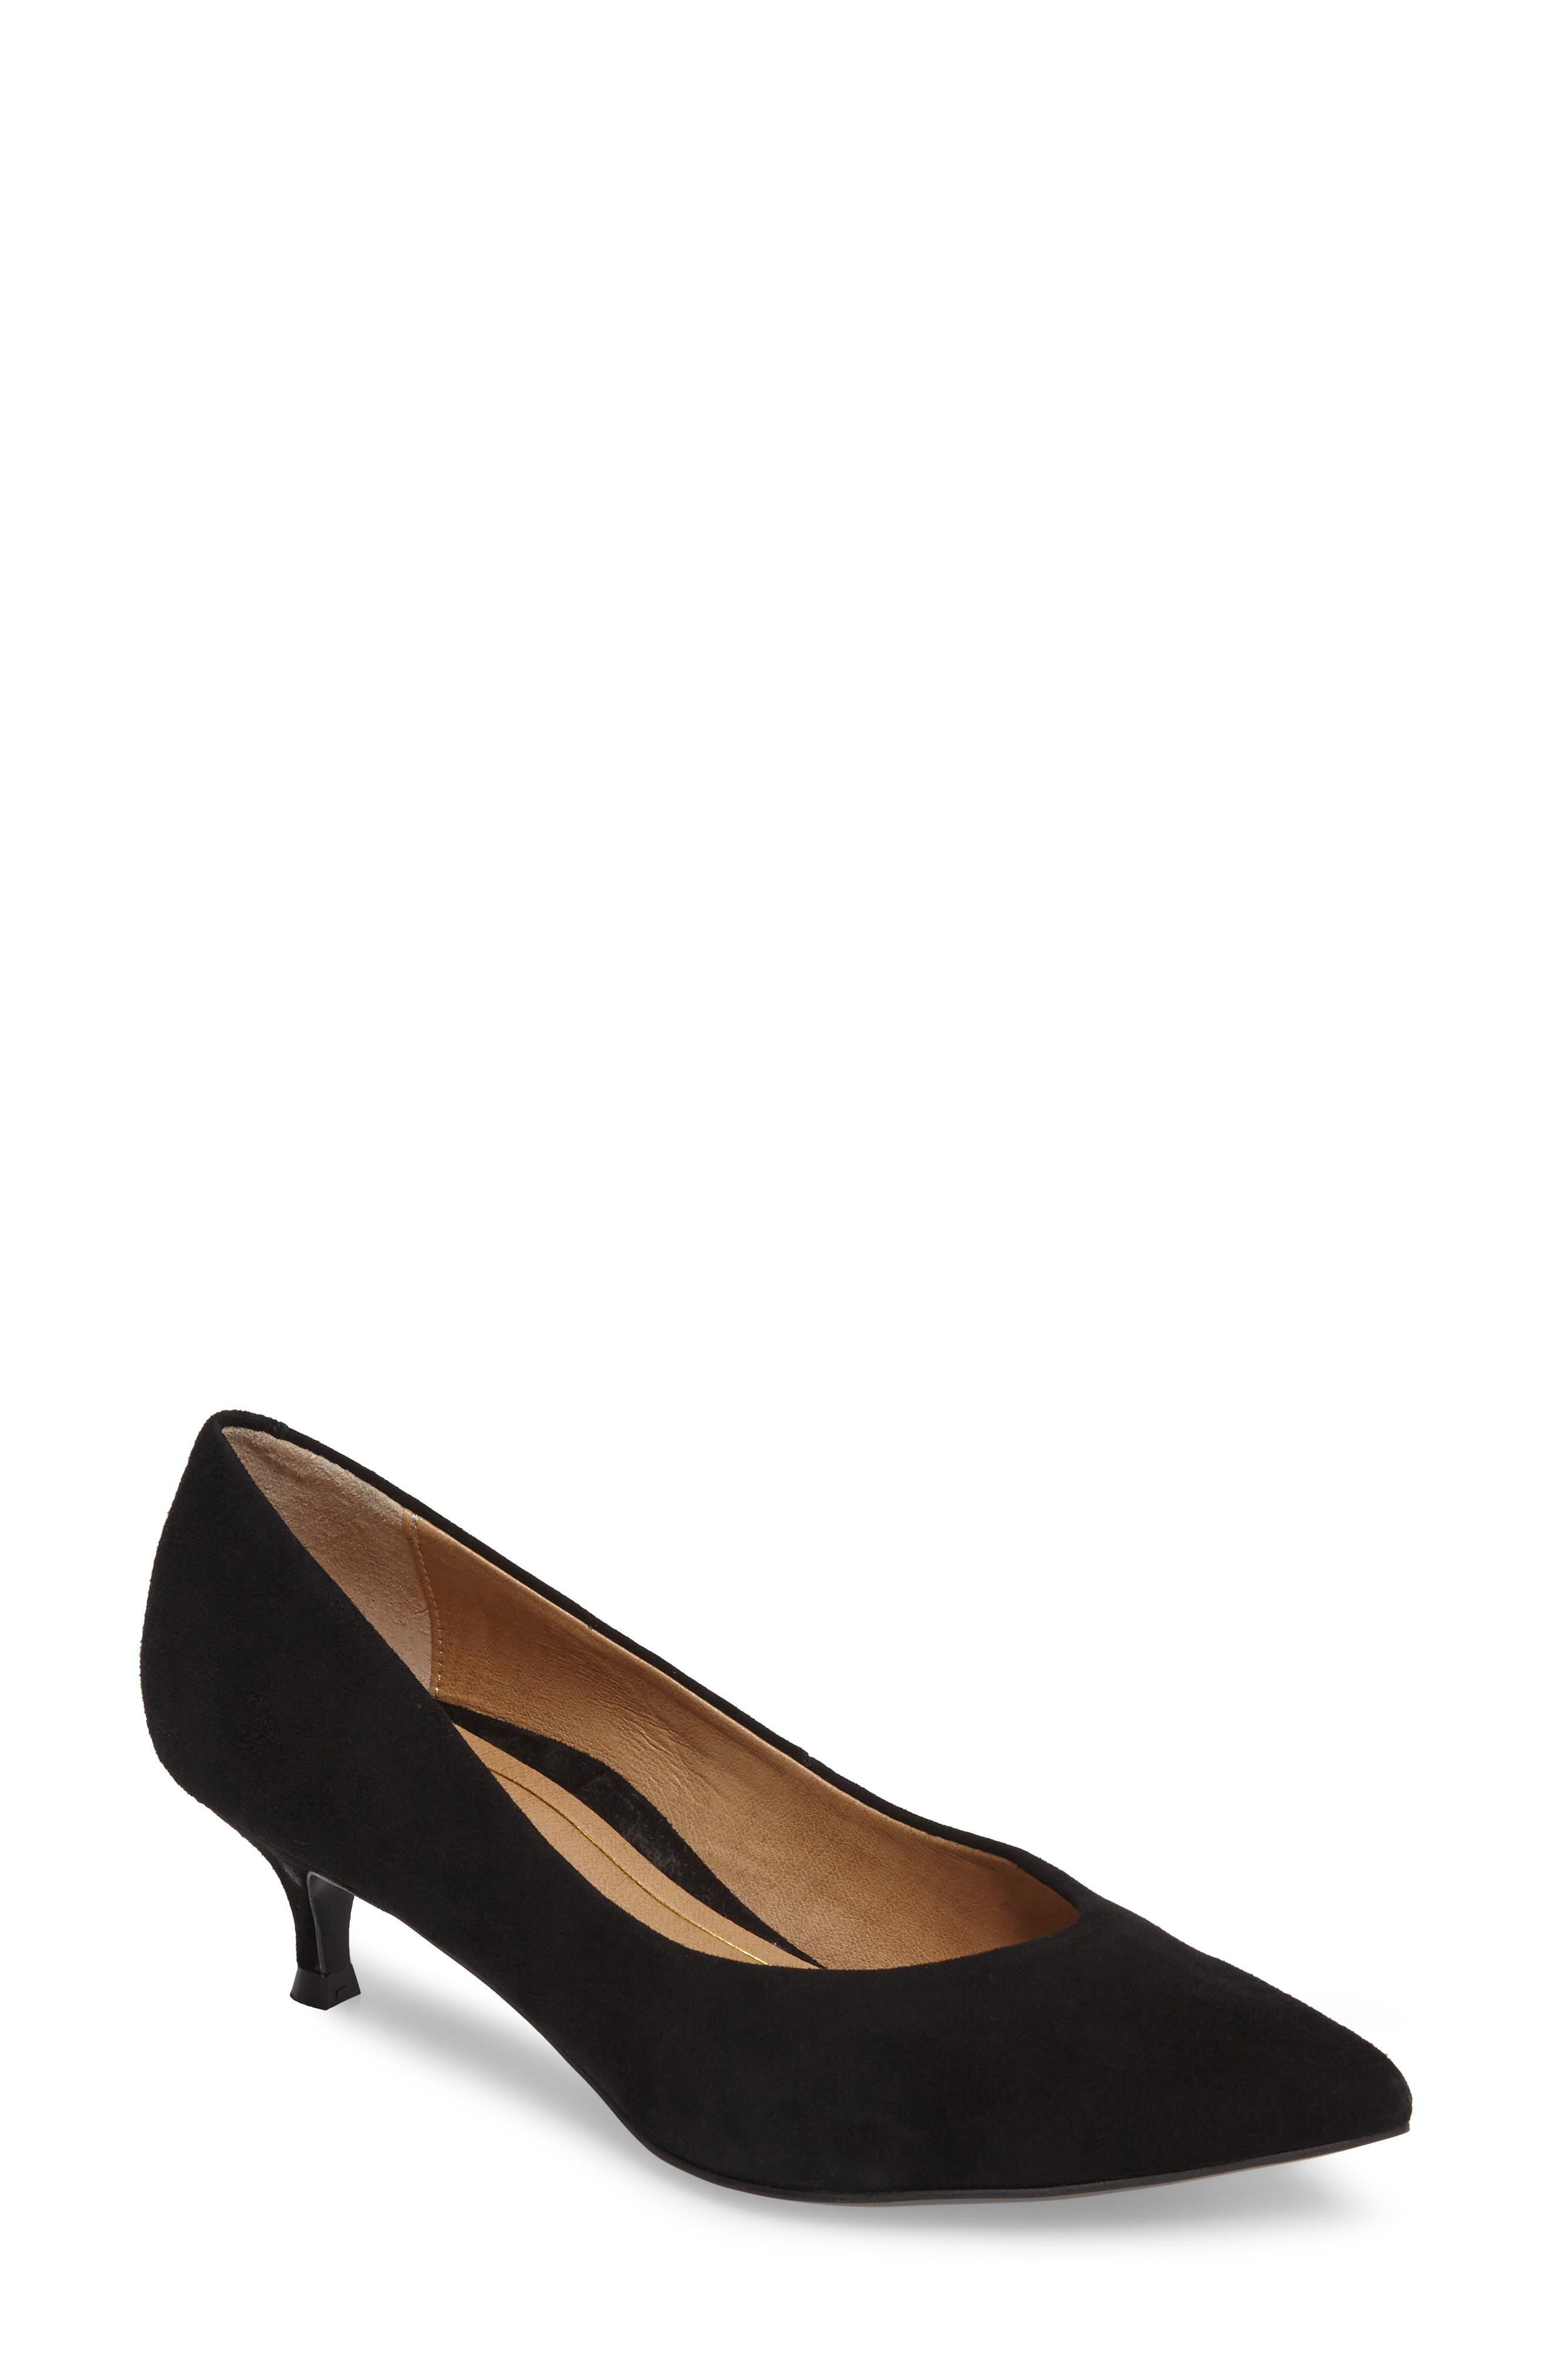 Josie Kitten Heel Pump,                         Main,                         color, BLACK SUEDE